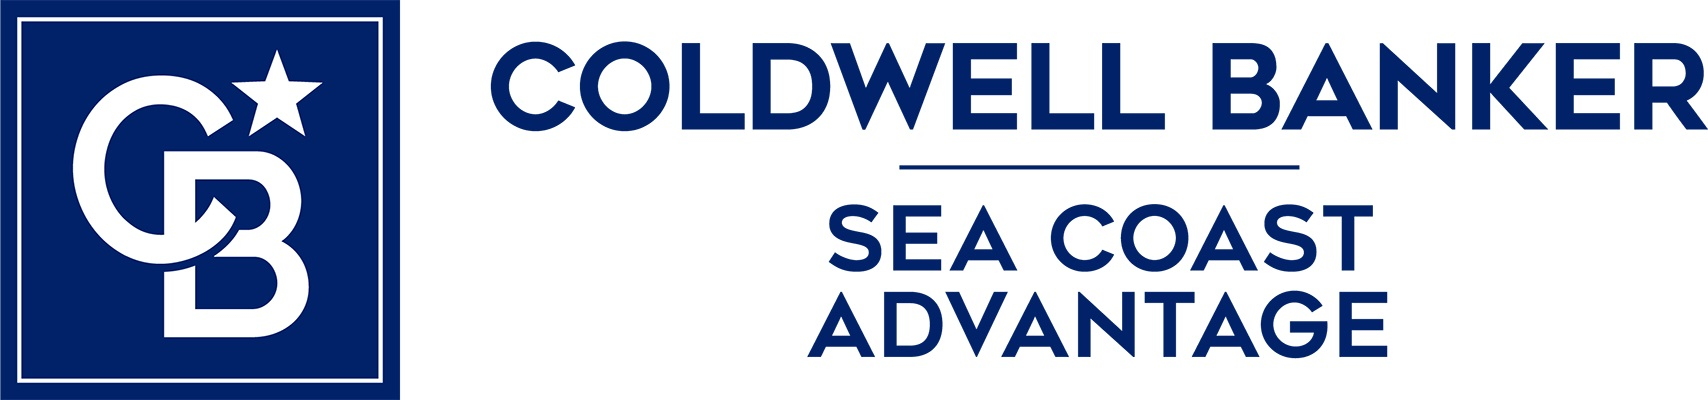 Kimberly Sands - Coldwell Banker Sea Coast Advantage Realty Logo